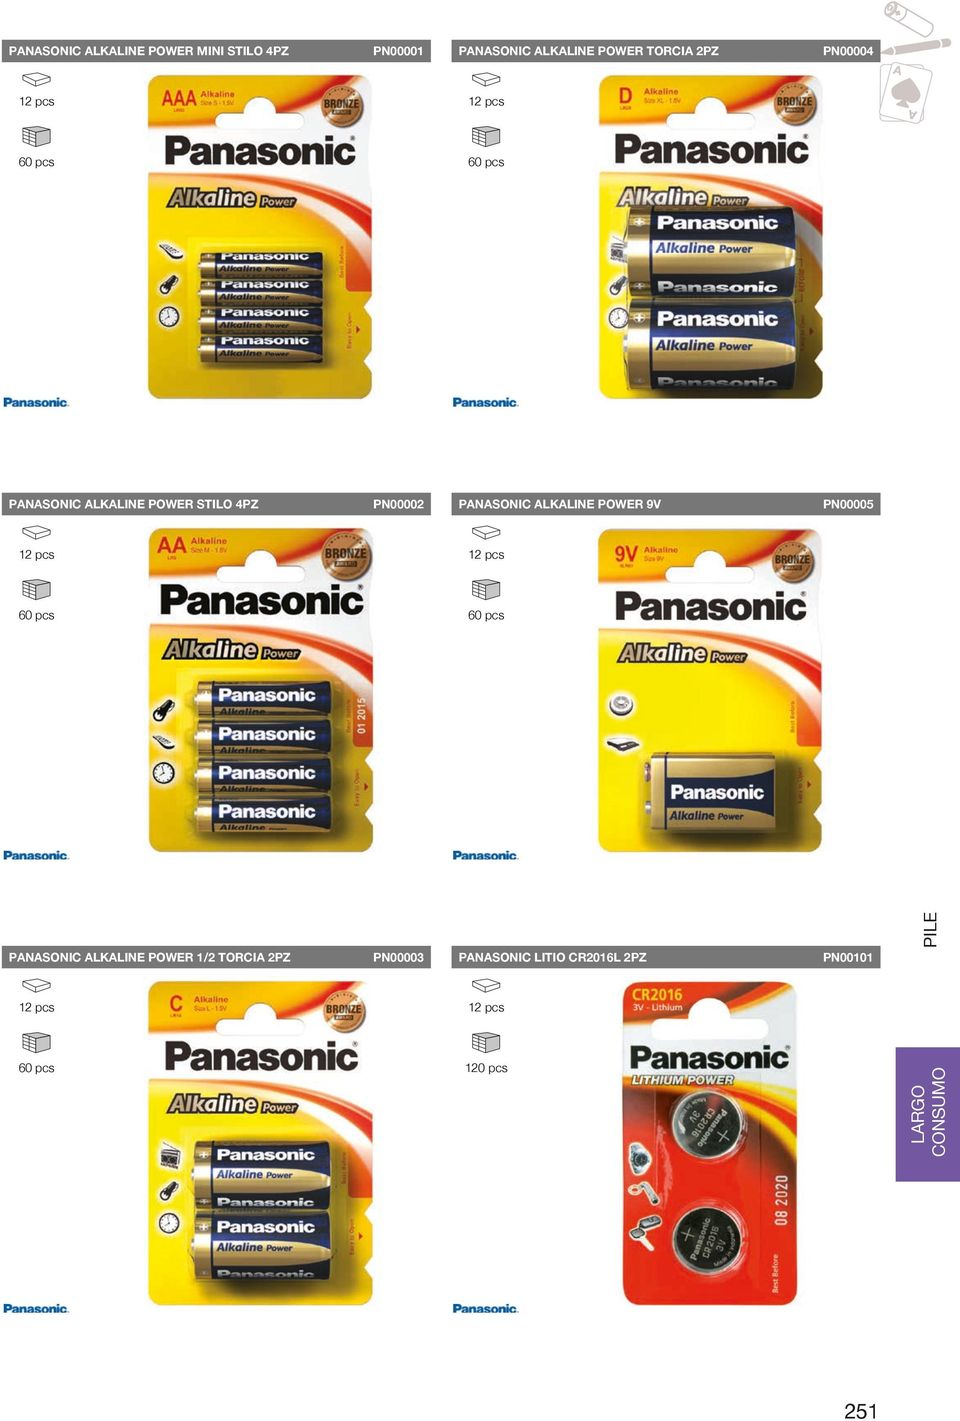 640 420 420 PANASONIC ALKALINE POWER STILO 4PZ PN00002 PANASONIC ALKALINE POWER 9V PN00005 60 pcs 60 pcs